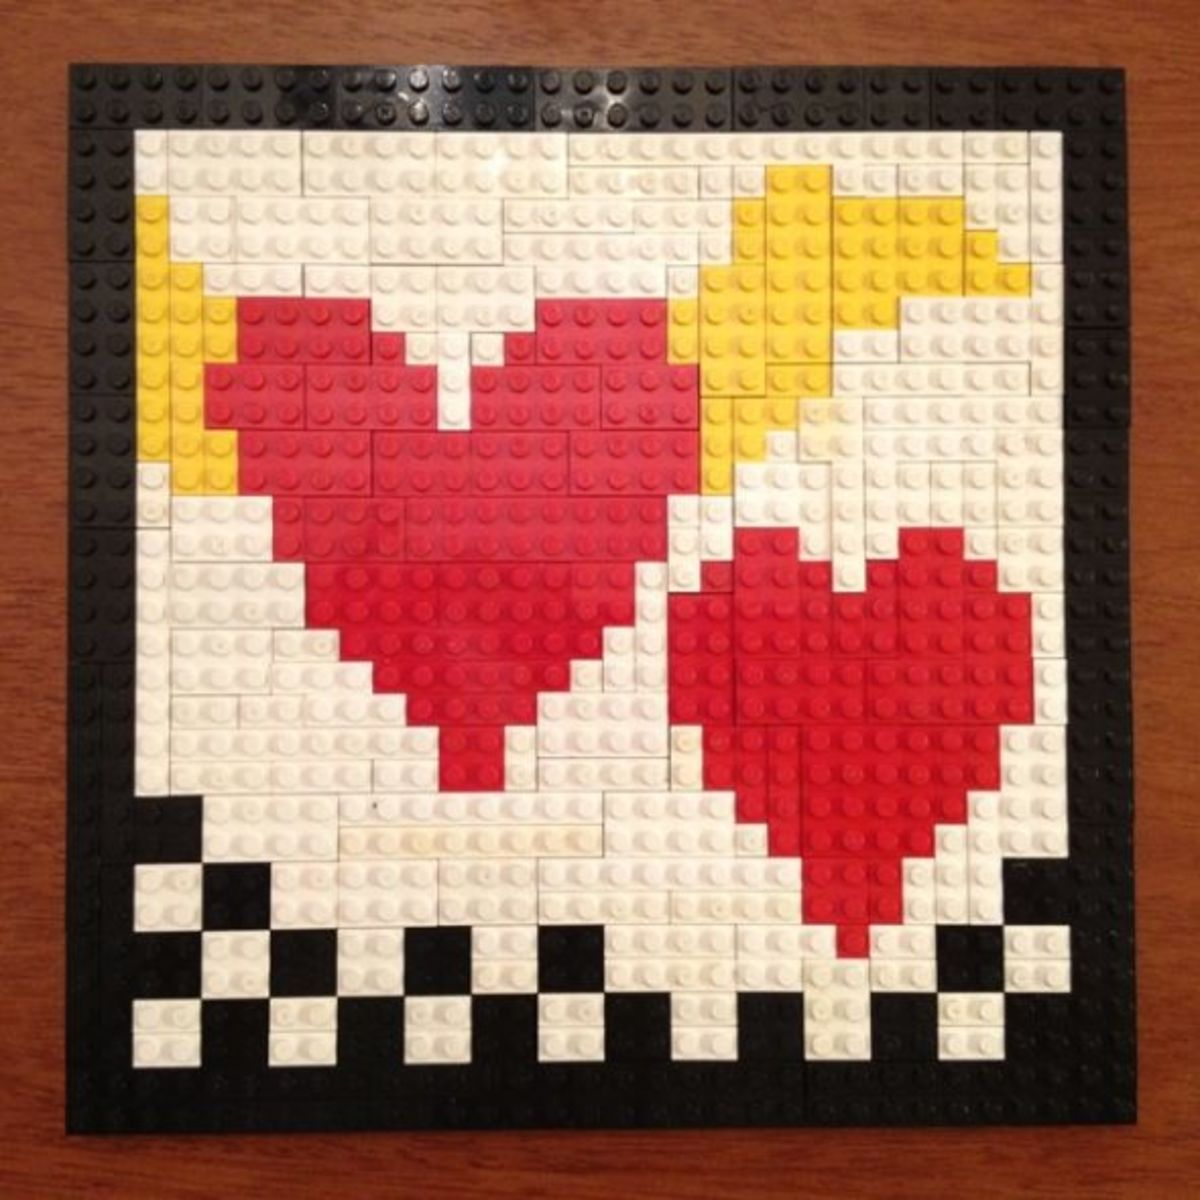 LEGO Heart Mosaic for Valentines